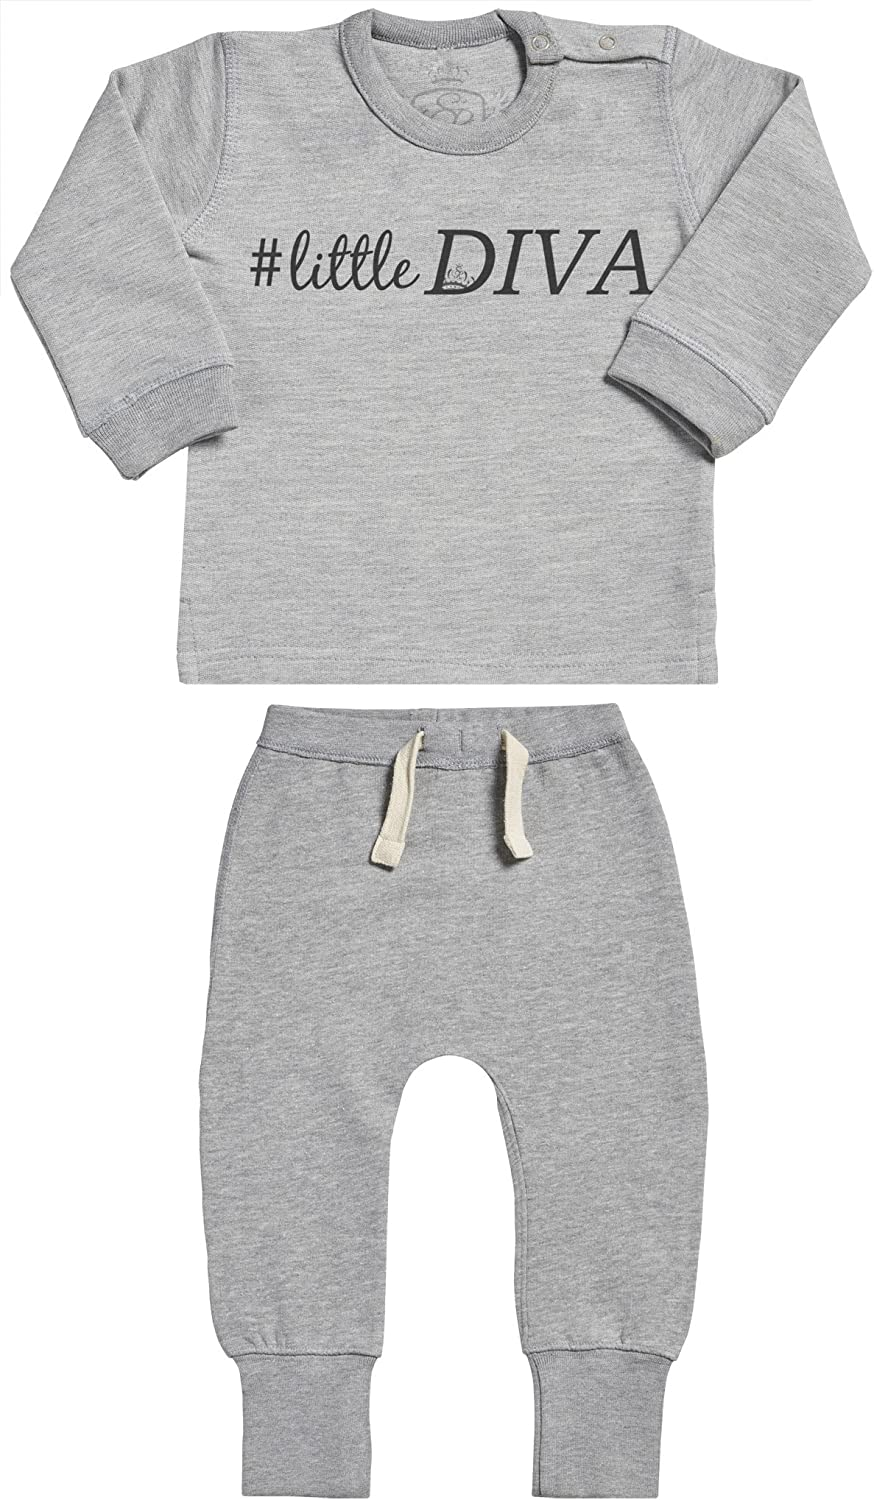 SR Baby Clothing Outfit Hashtag Little Diva Baby Outfit Baby Gift Set Baby Sweater /& Baby Joggers